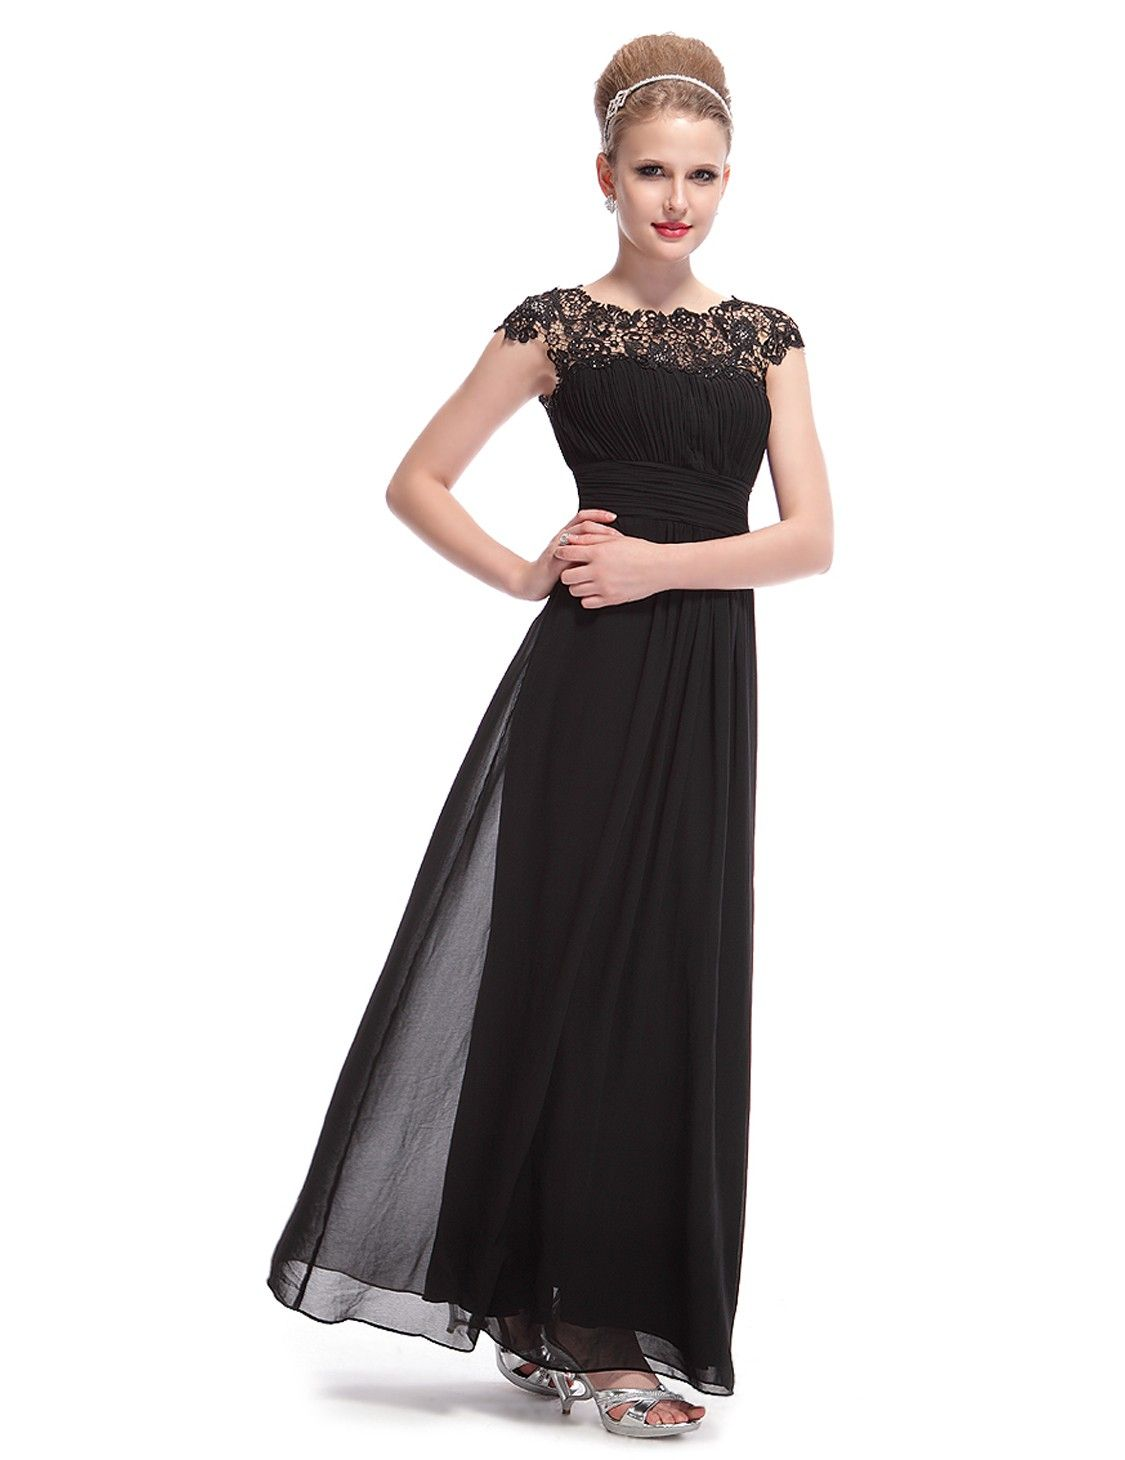 Lace Cap Sleeve Evening Gown | Cap, Gowns and Floor length dresses